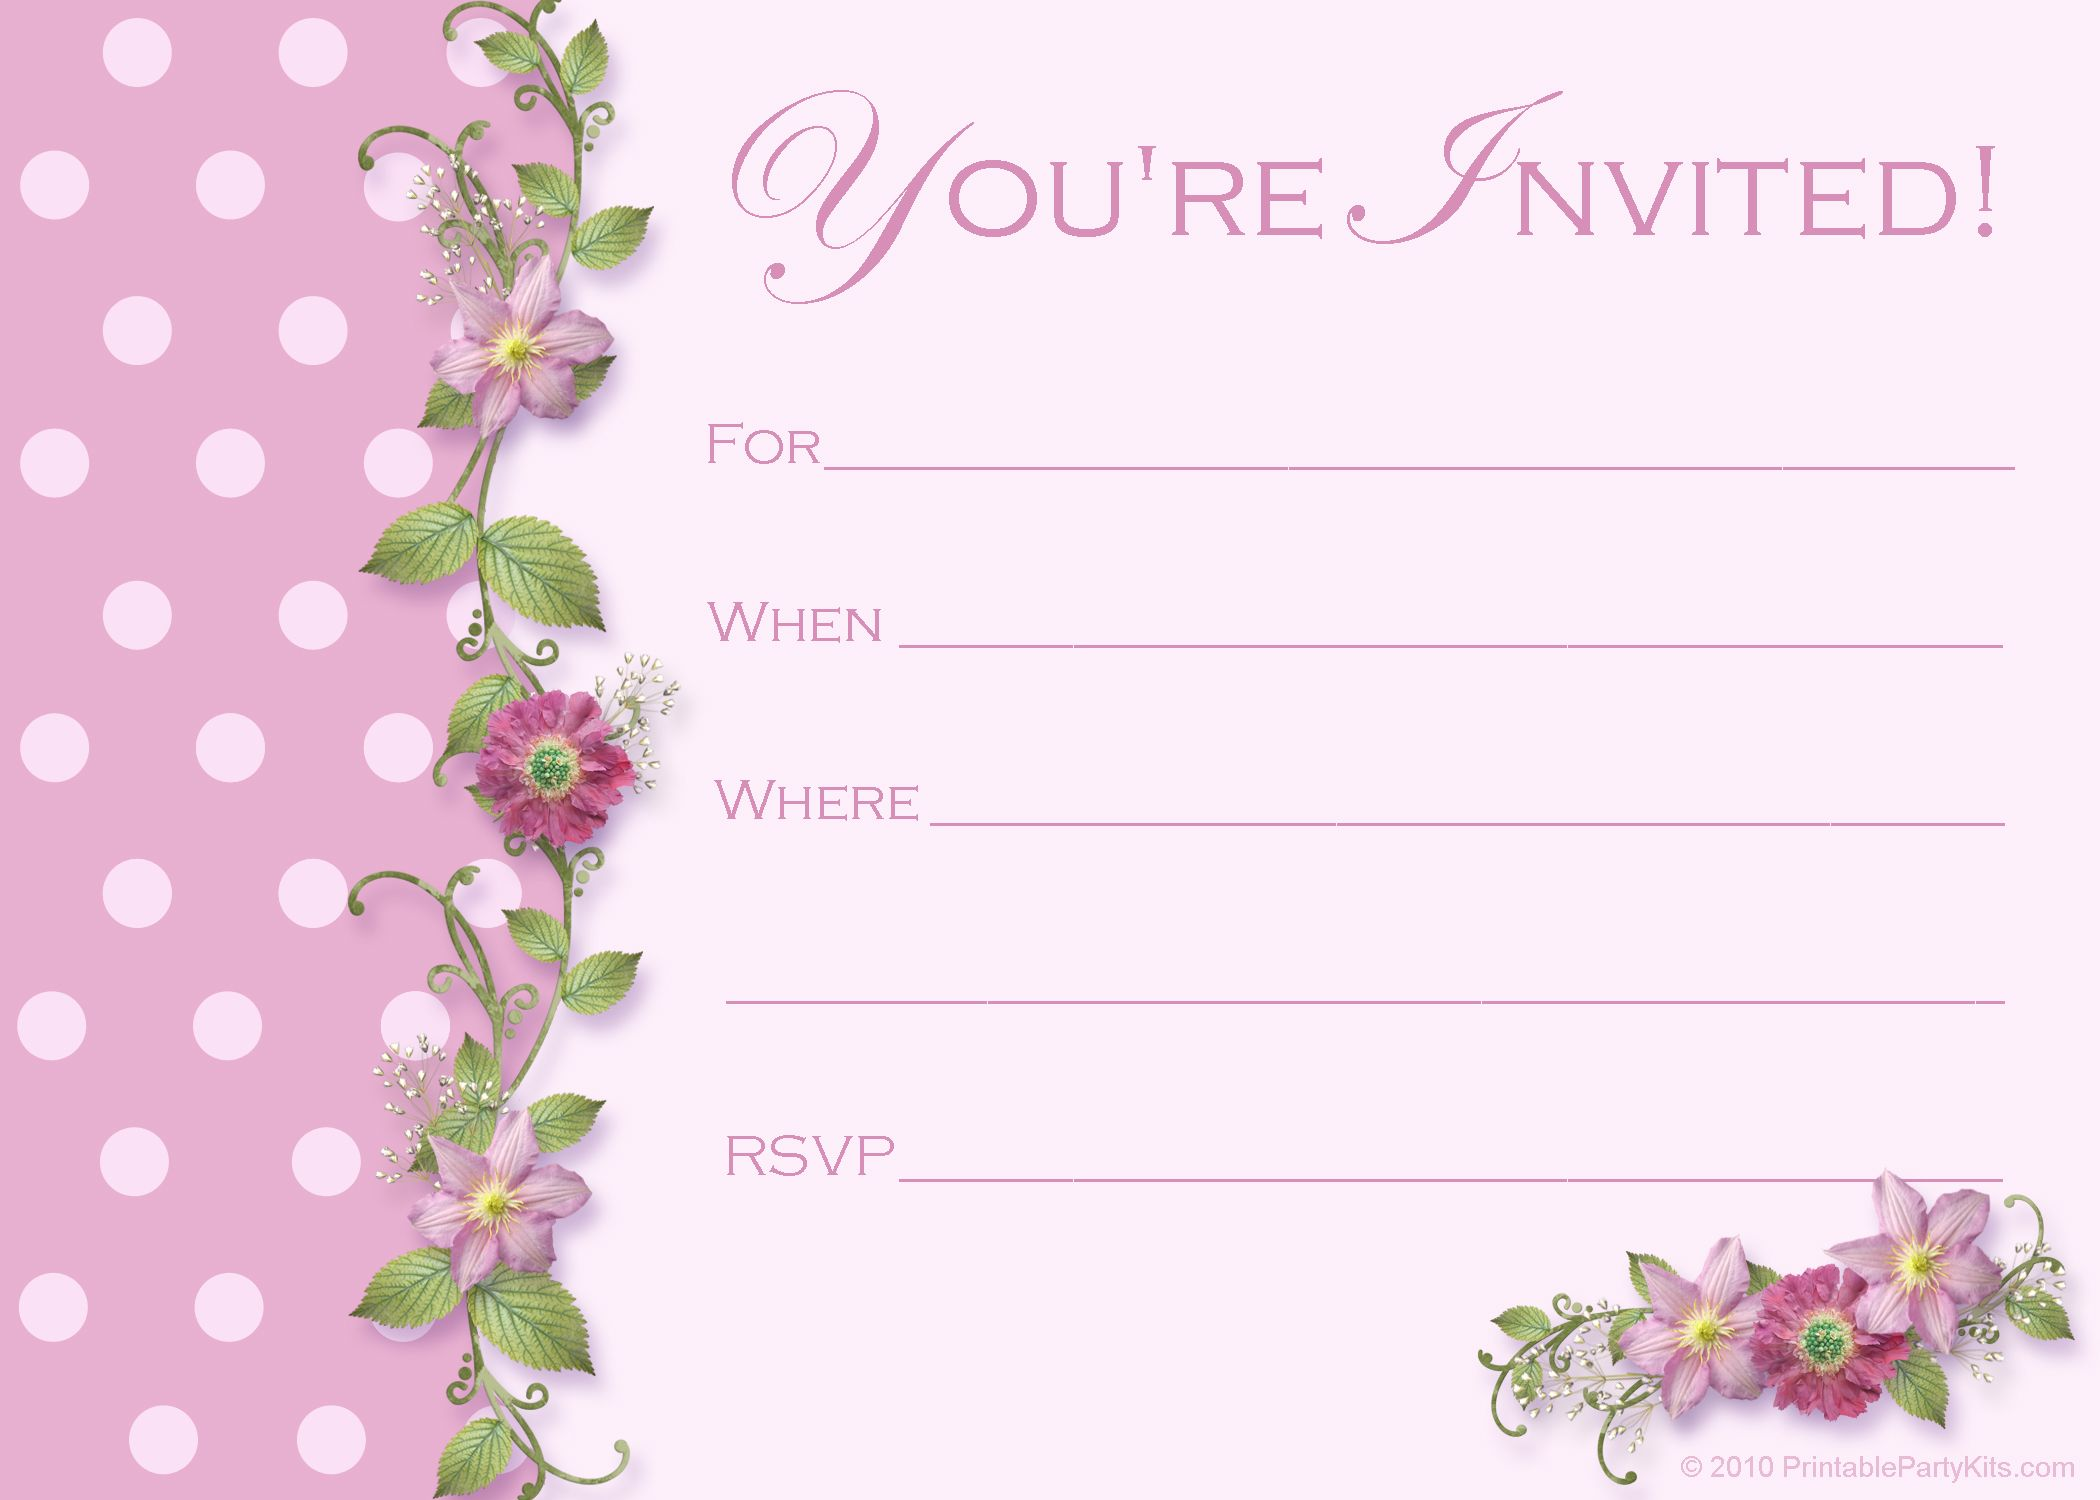 Unique Birthday Invitation Templates Ideas On Pinterest Free - Editable birthday invitations for adults